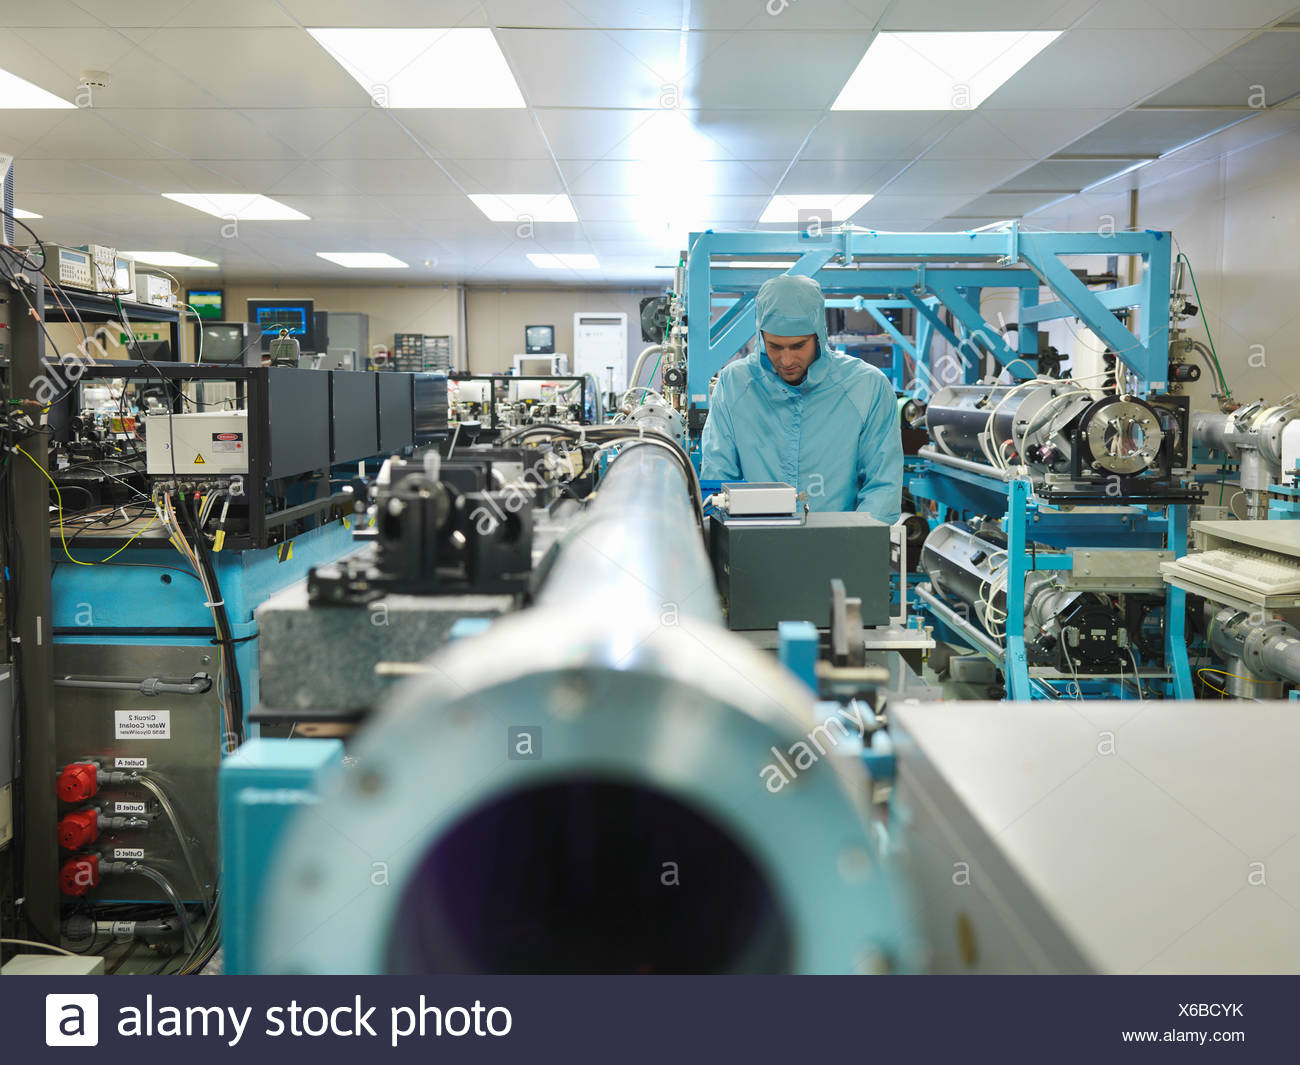 Scientist in laboratory with laser - Stock Image